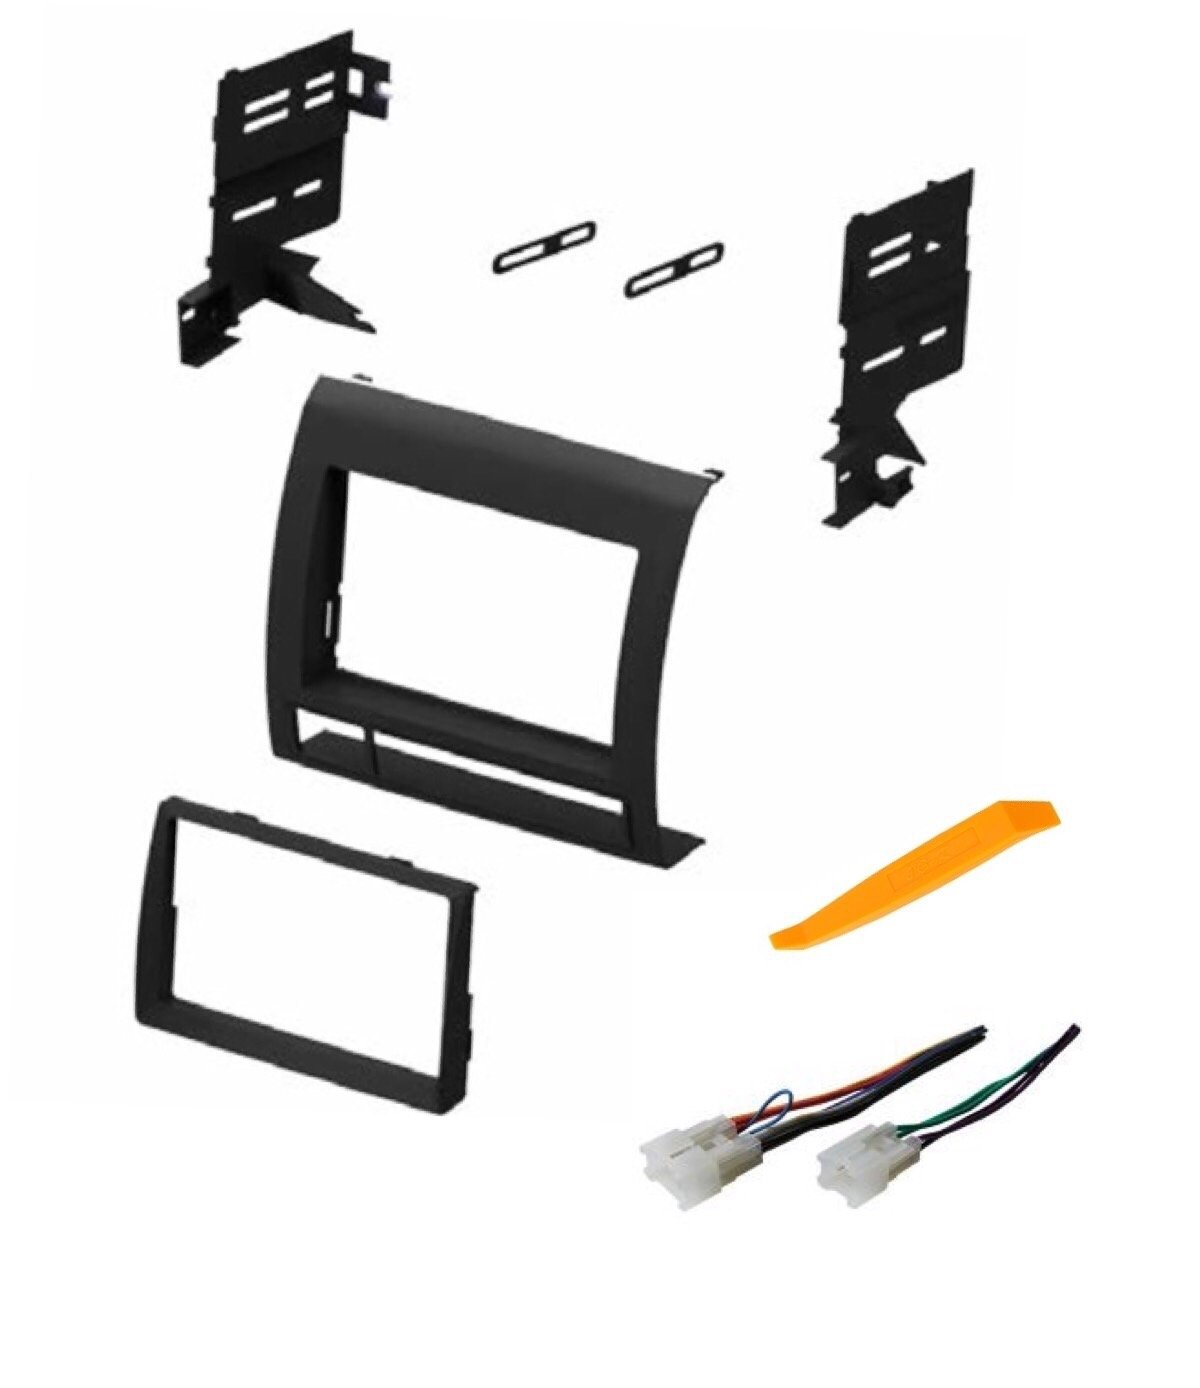 No Factory Premium Amp Other ASC Audio Car Stereo Dash Install Kit and Wire Harness for Installing an Aftermarket Double Din Radio for 2005 2006 2007 2008 2009 2010 2011 Toyota Tacoma